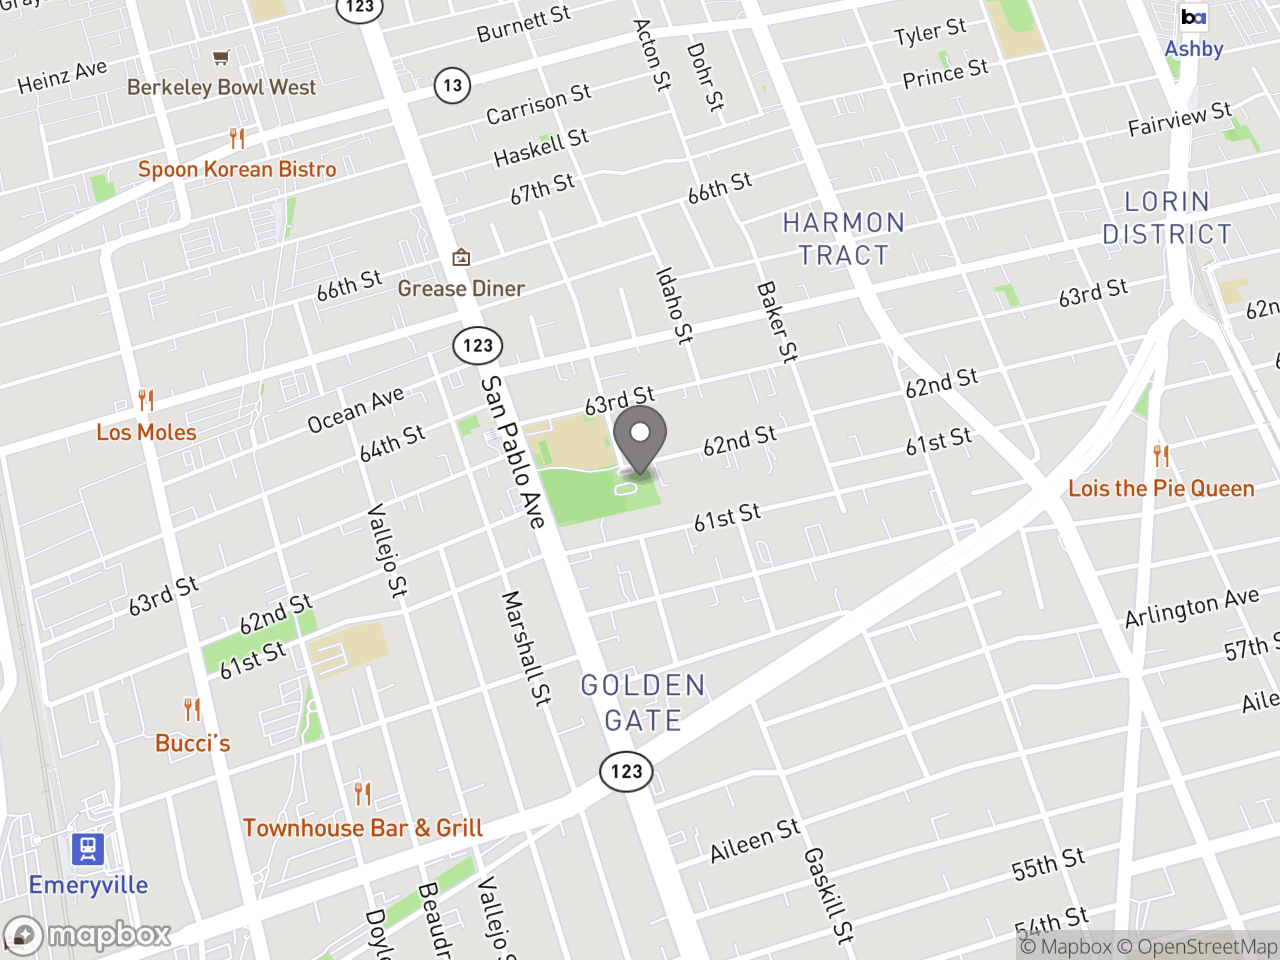 Map location for Introduction to Computers for Seniors, located at 1075 62nd St in Oakland, CA 94608